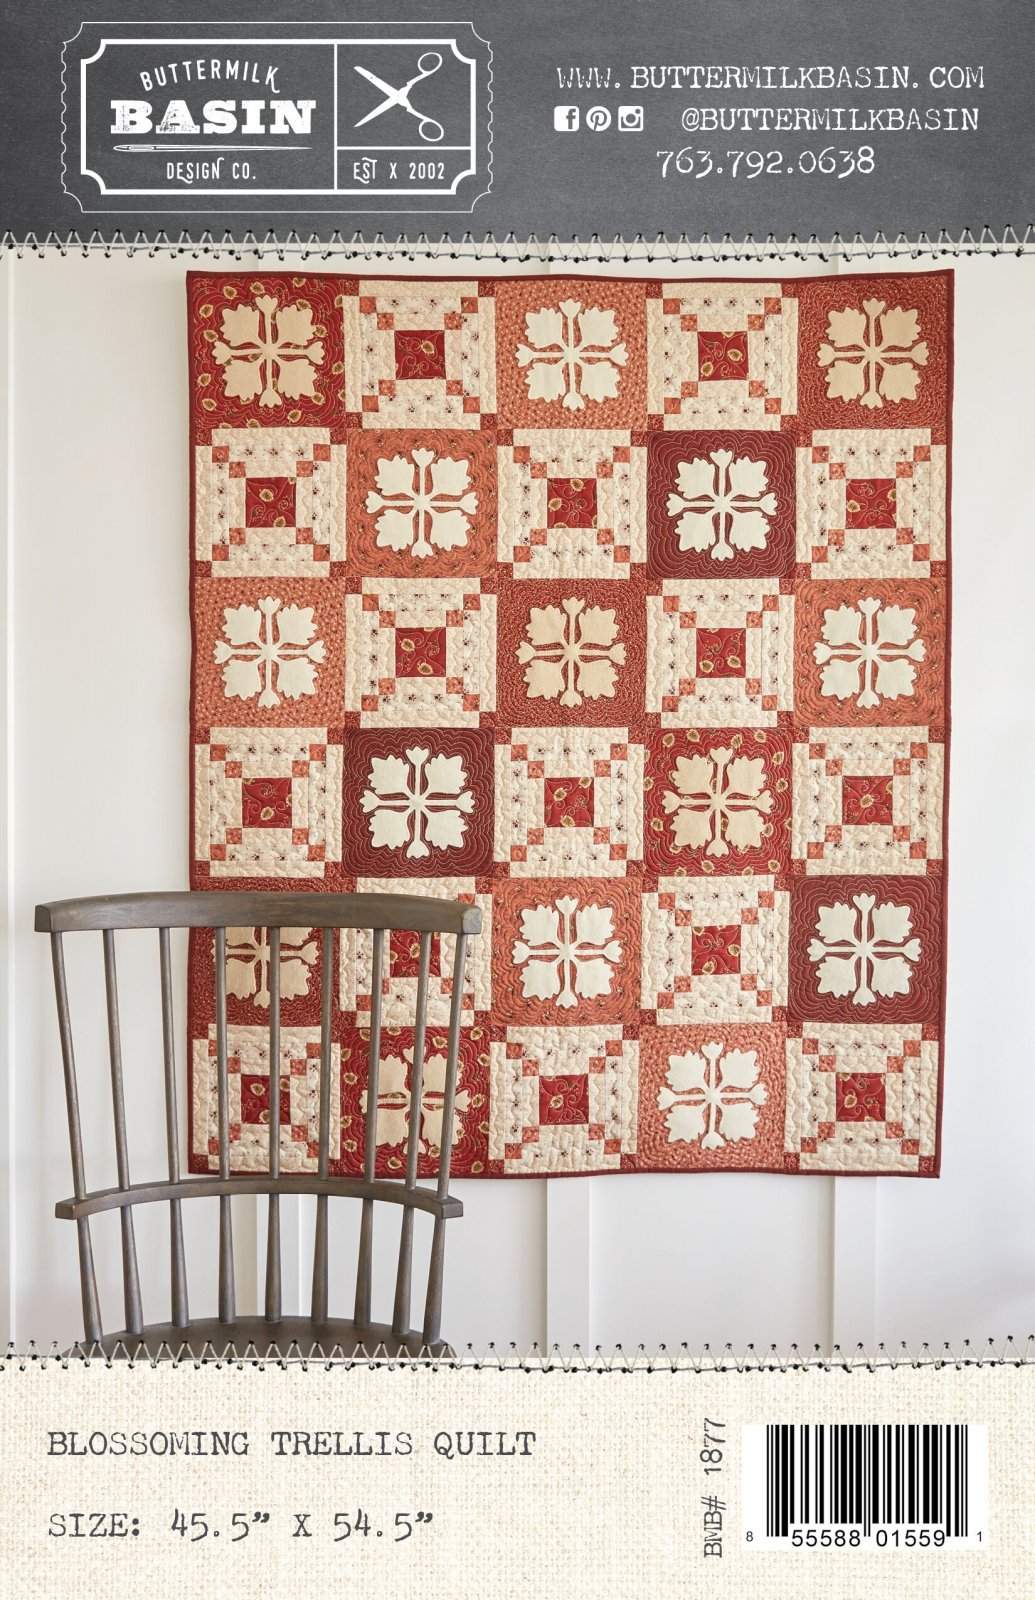 Blossoming Trellis Quilt *Kit & Pattern